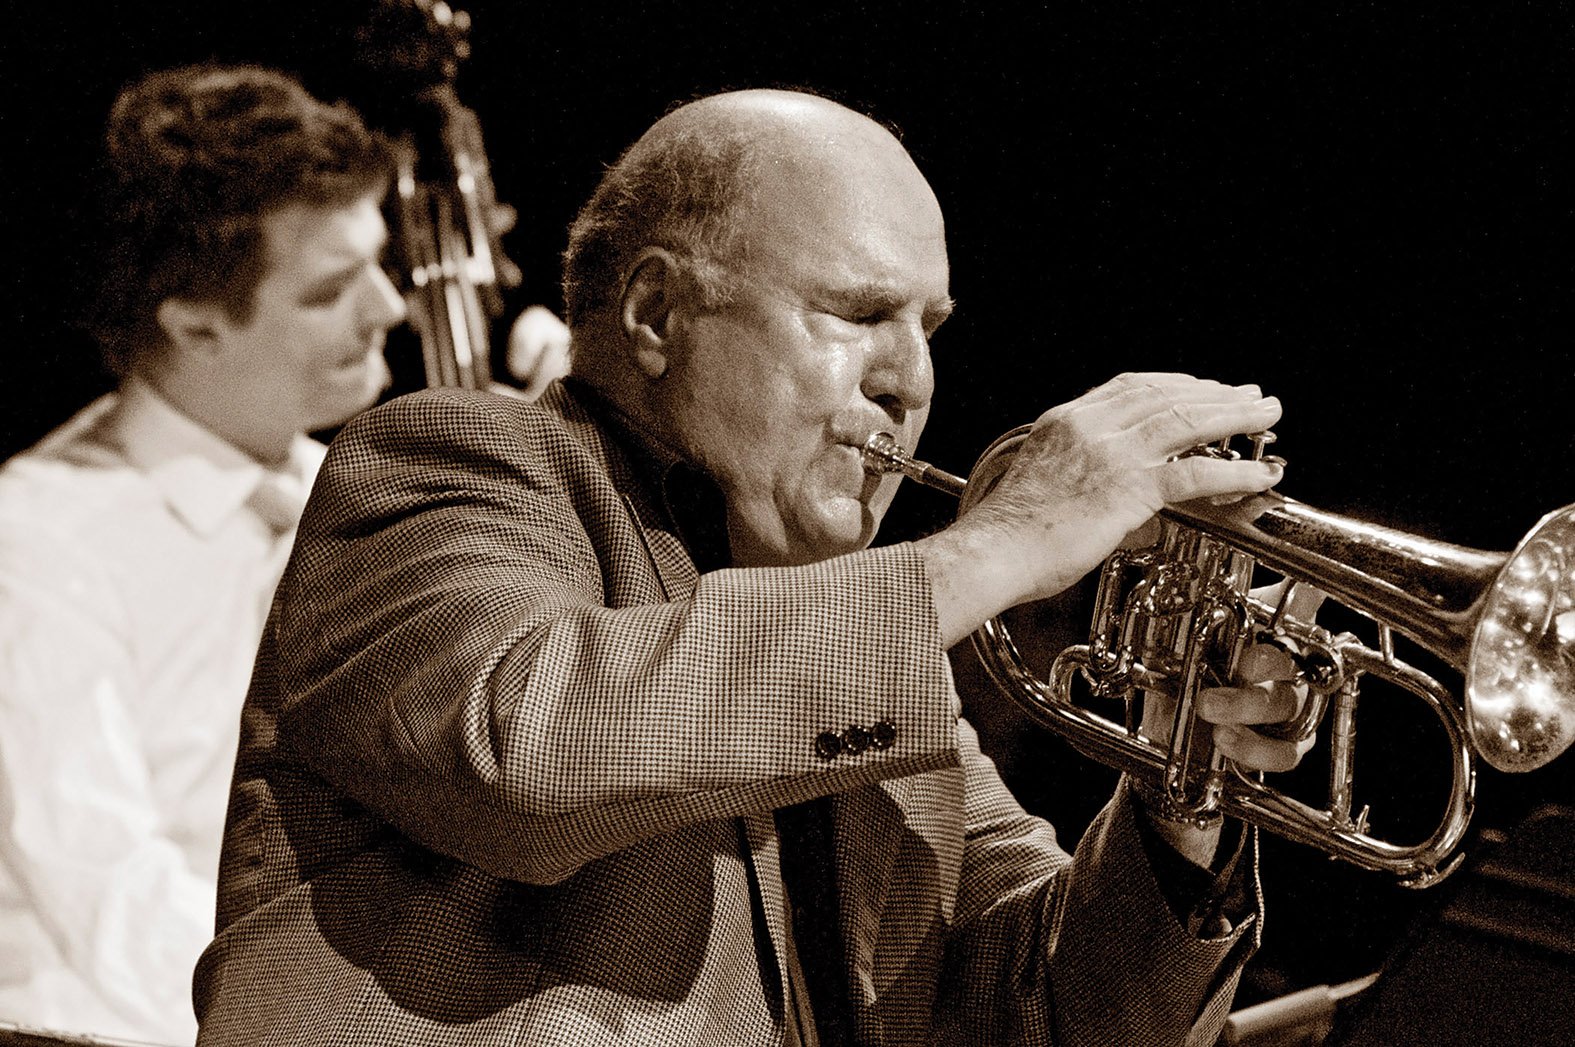 Guido Basso (foreground), shown performing with Morgan Moore, has helped turn the John Sherwood Trio into a quartet for the jazz portion of Stirlingfest this fall.